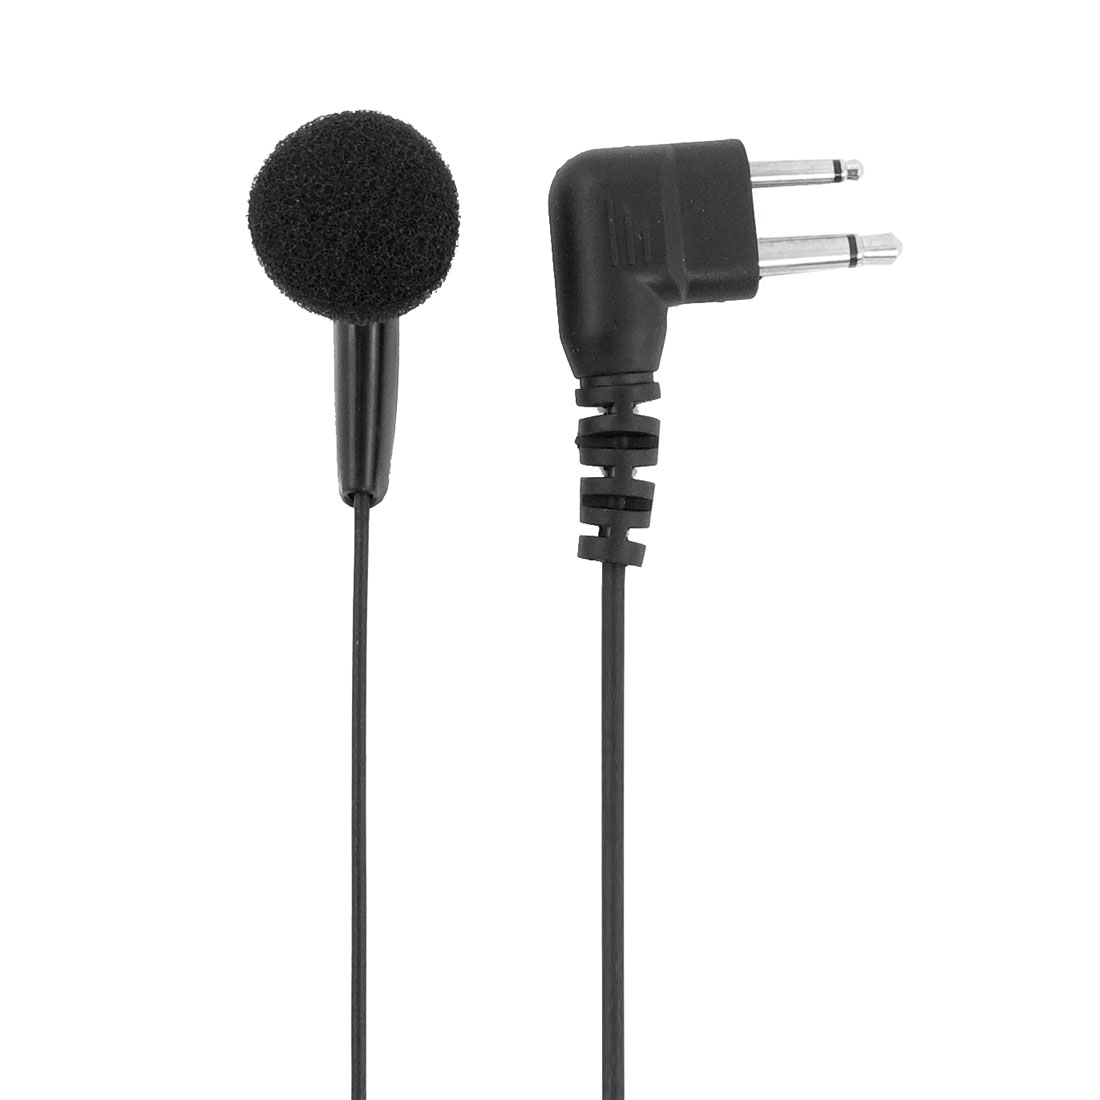 2.5mm 3.5mm Jack Single Side Headset Earphone Black w Clip for Two Way Radio